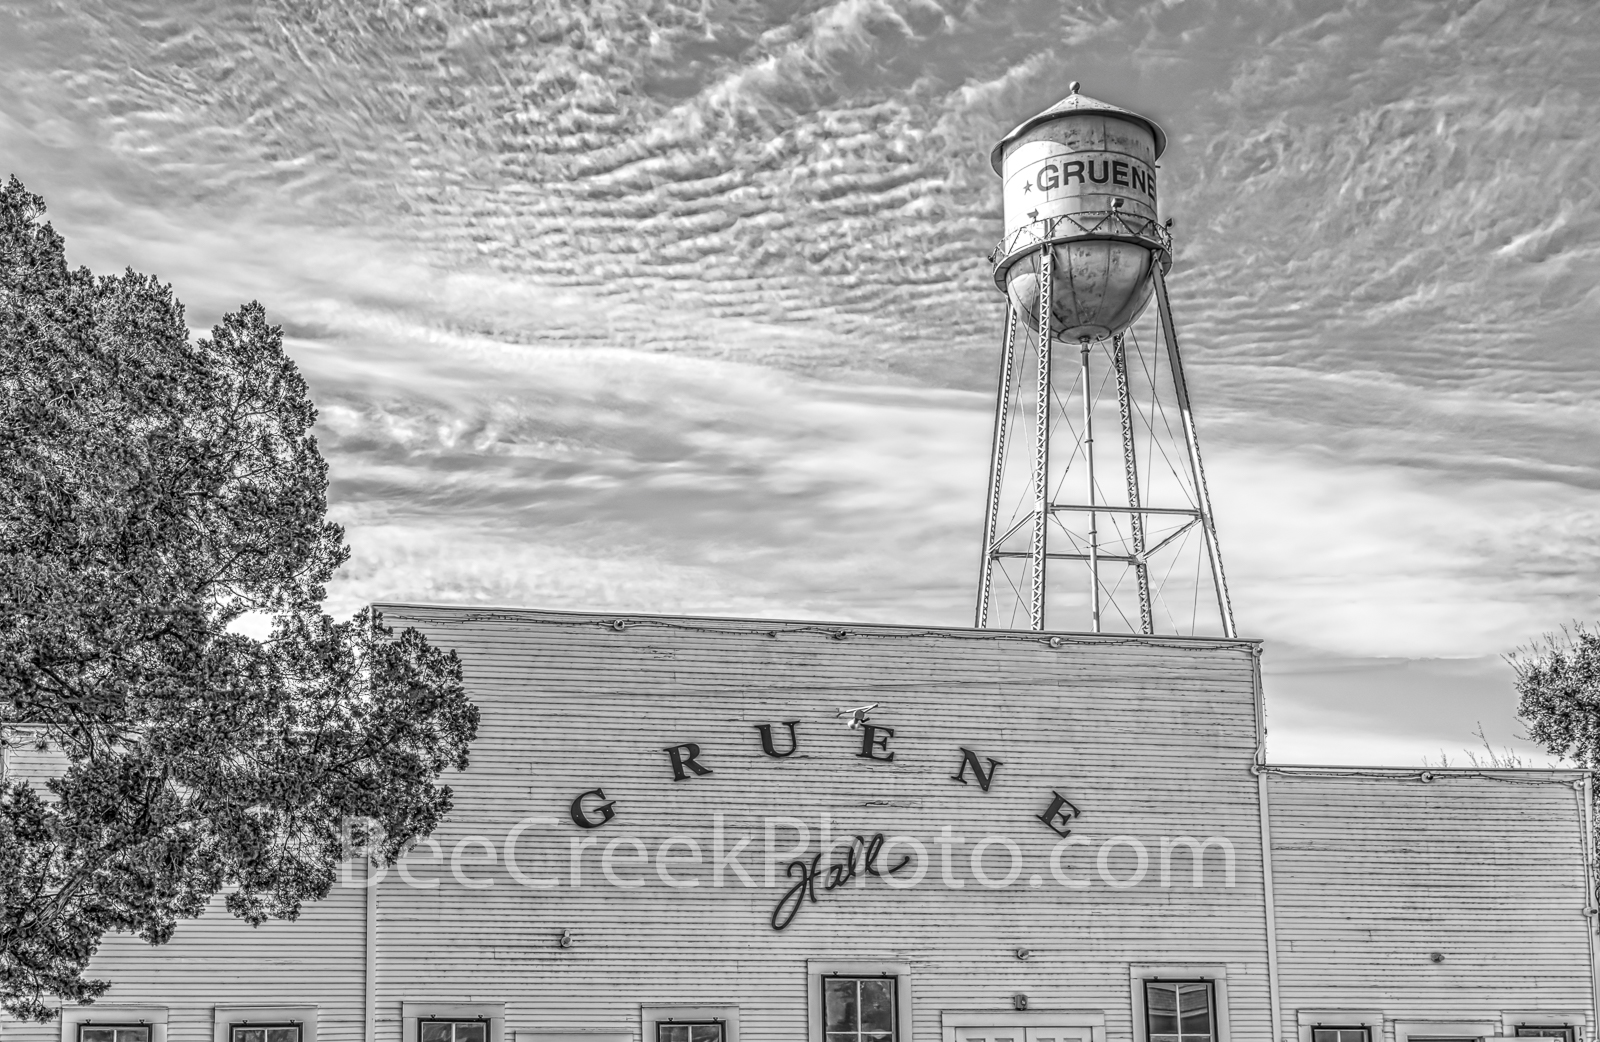 Gruene Hall, B W, black and white, Gruene Texas, dance hall, saloon, town, community, Earnest Gruene, german, german town, tourist destination, travel, watertower, , photo